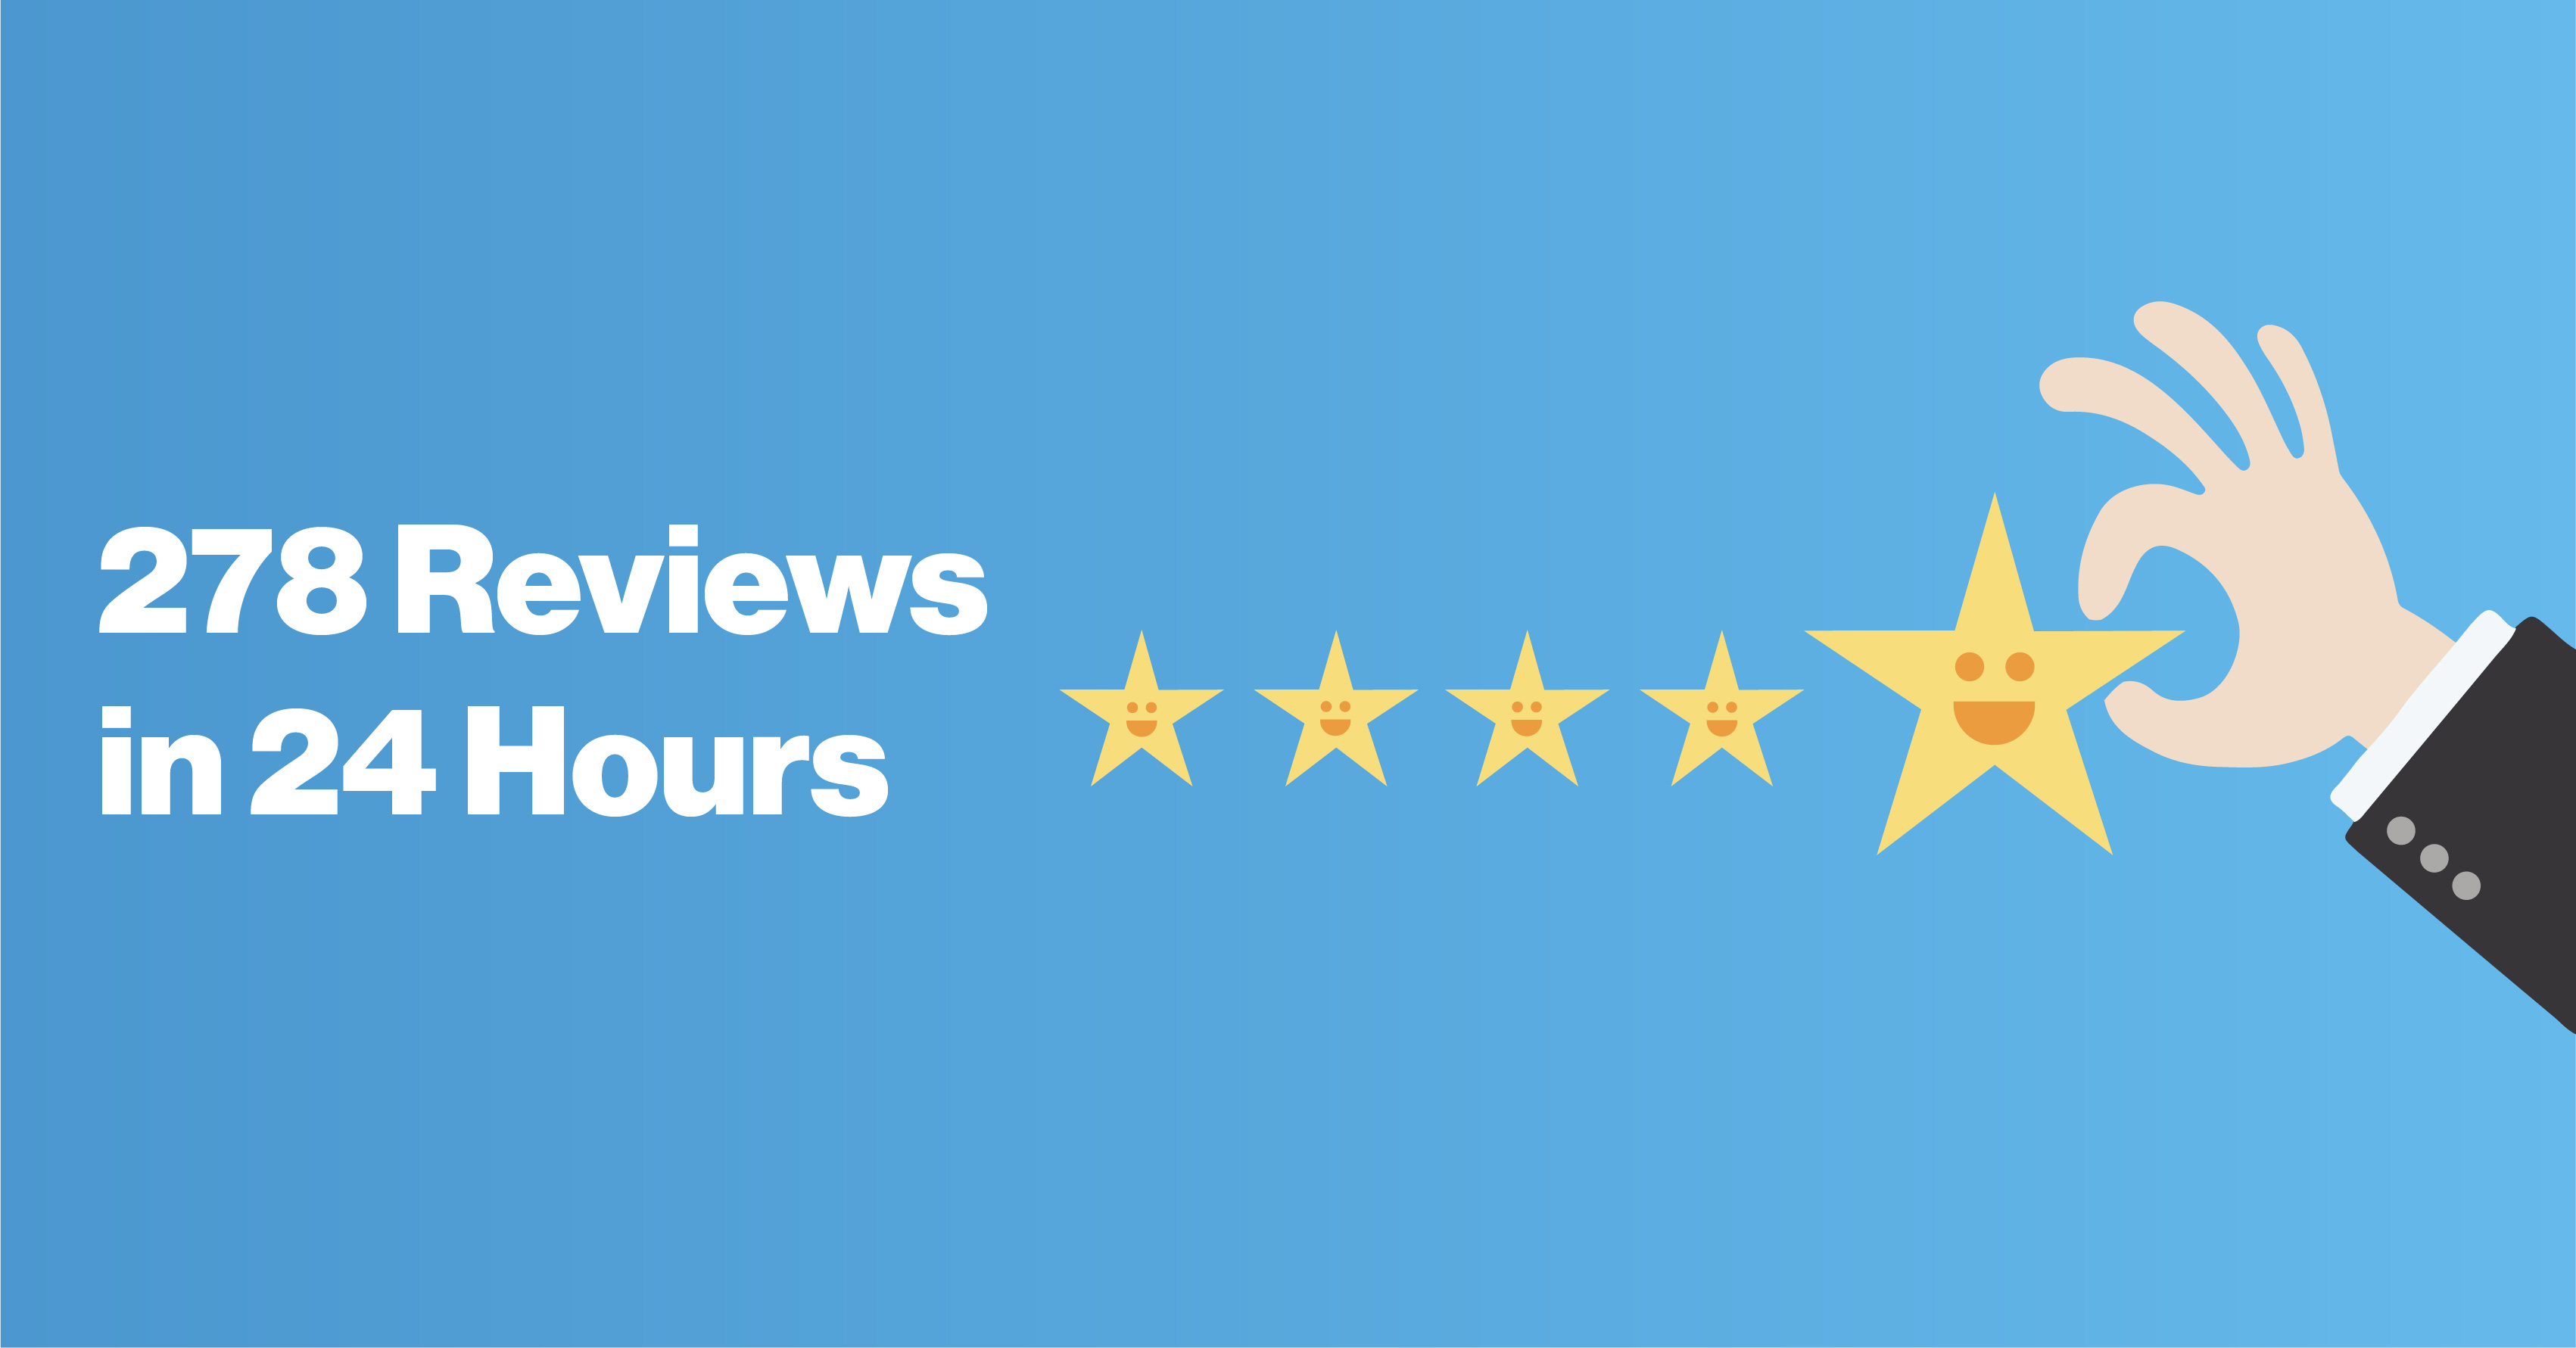 How one new client got 283 verified reviews in 24 hours